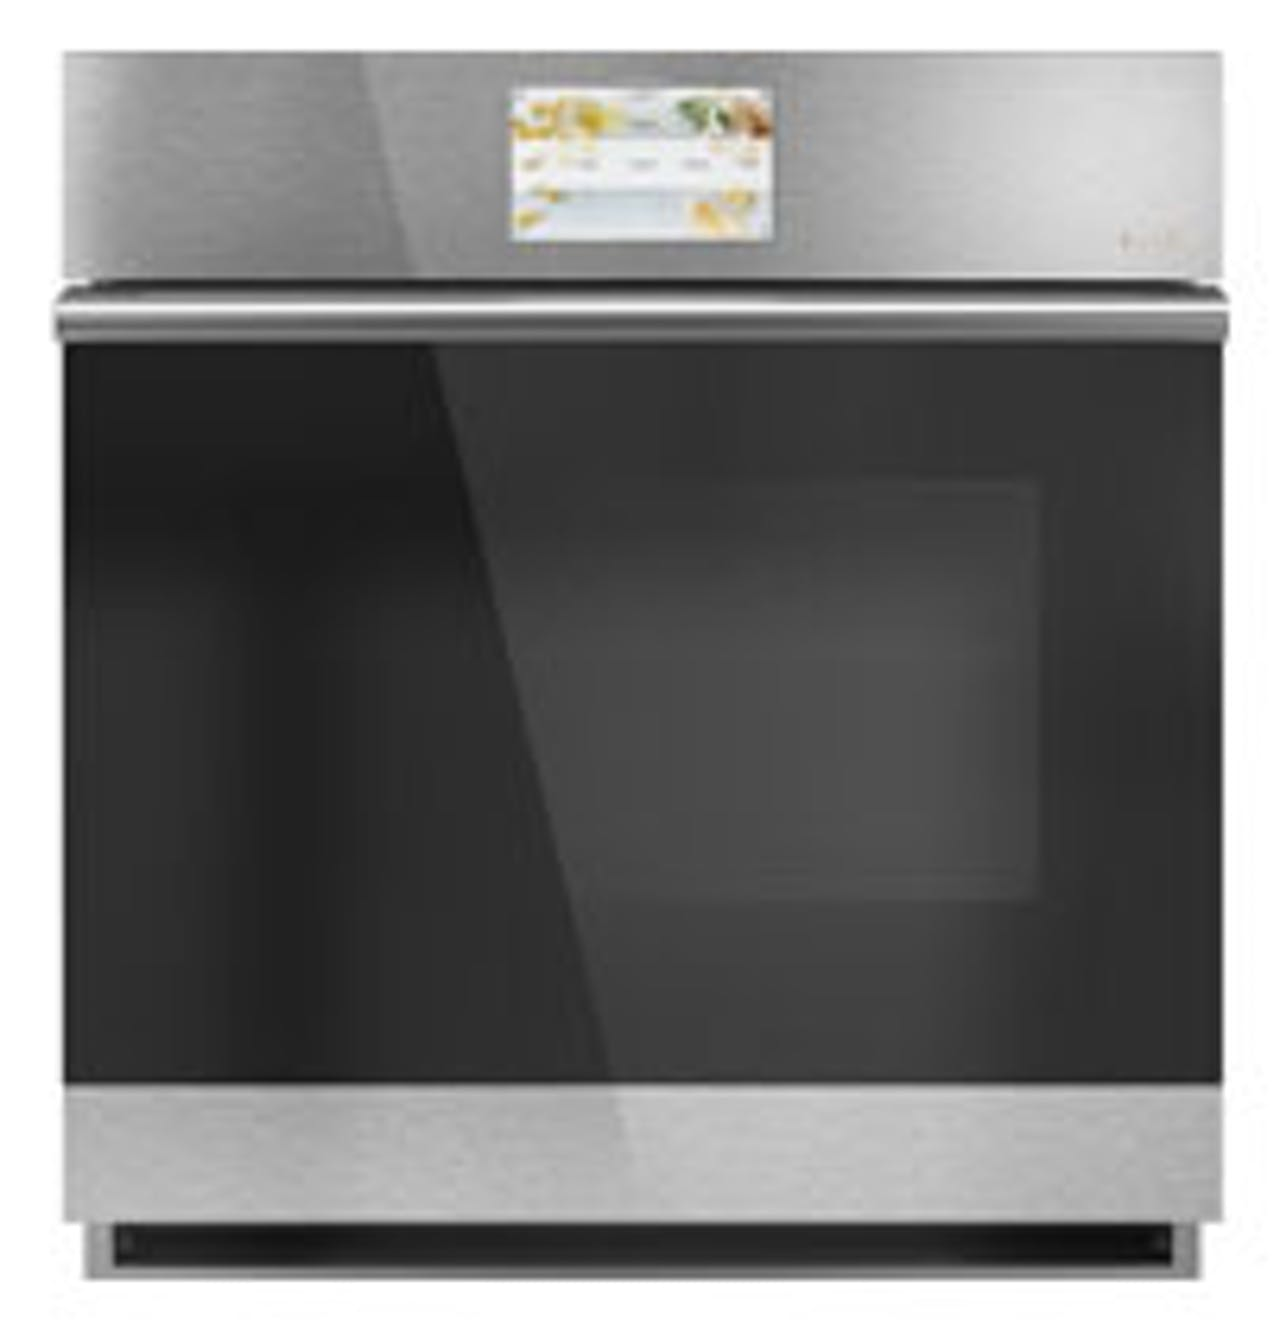 Smart Wall Ovens